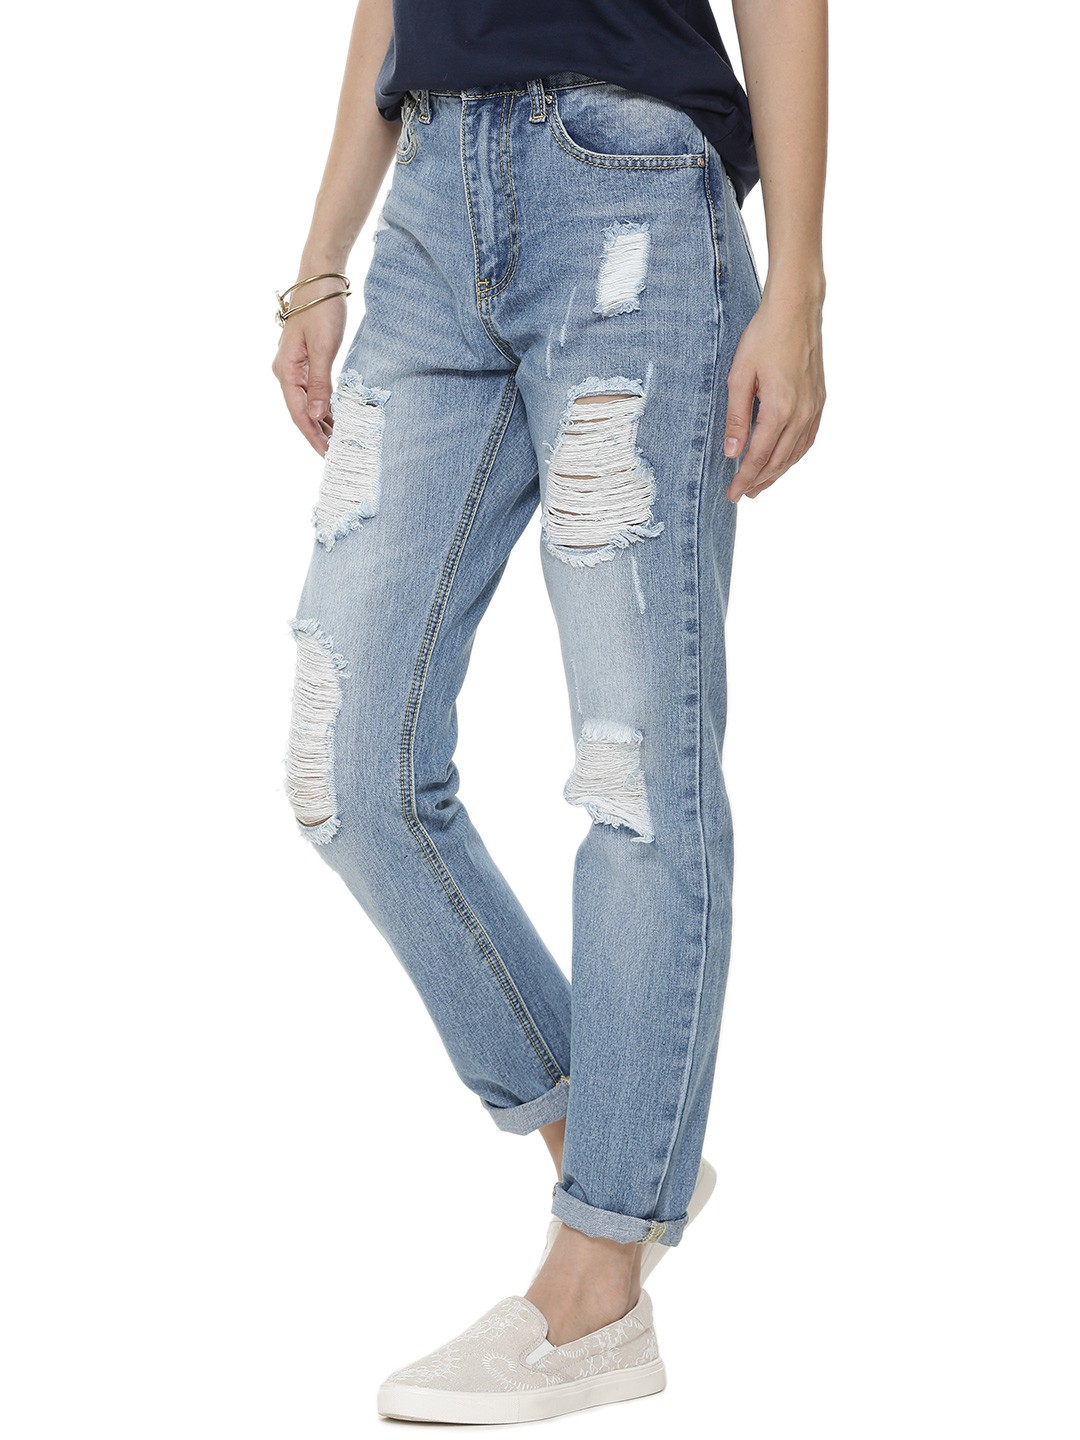 Buy MOMOKROM Distressed Boyfriend Jeans For Women - Women's Blue ...